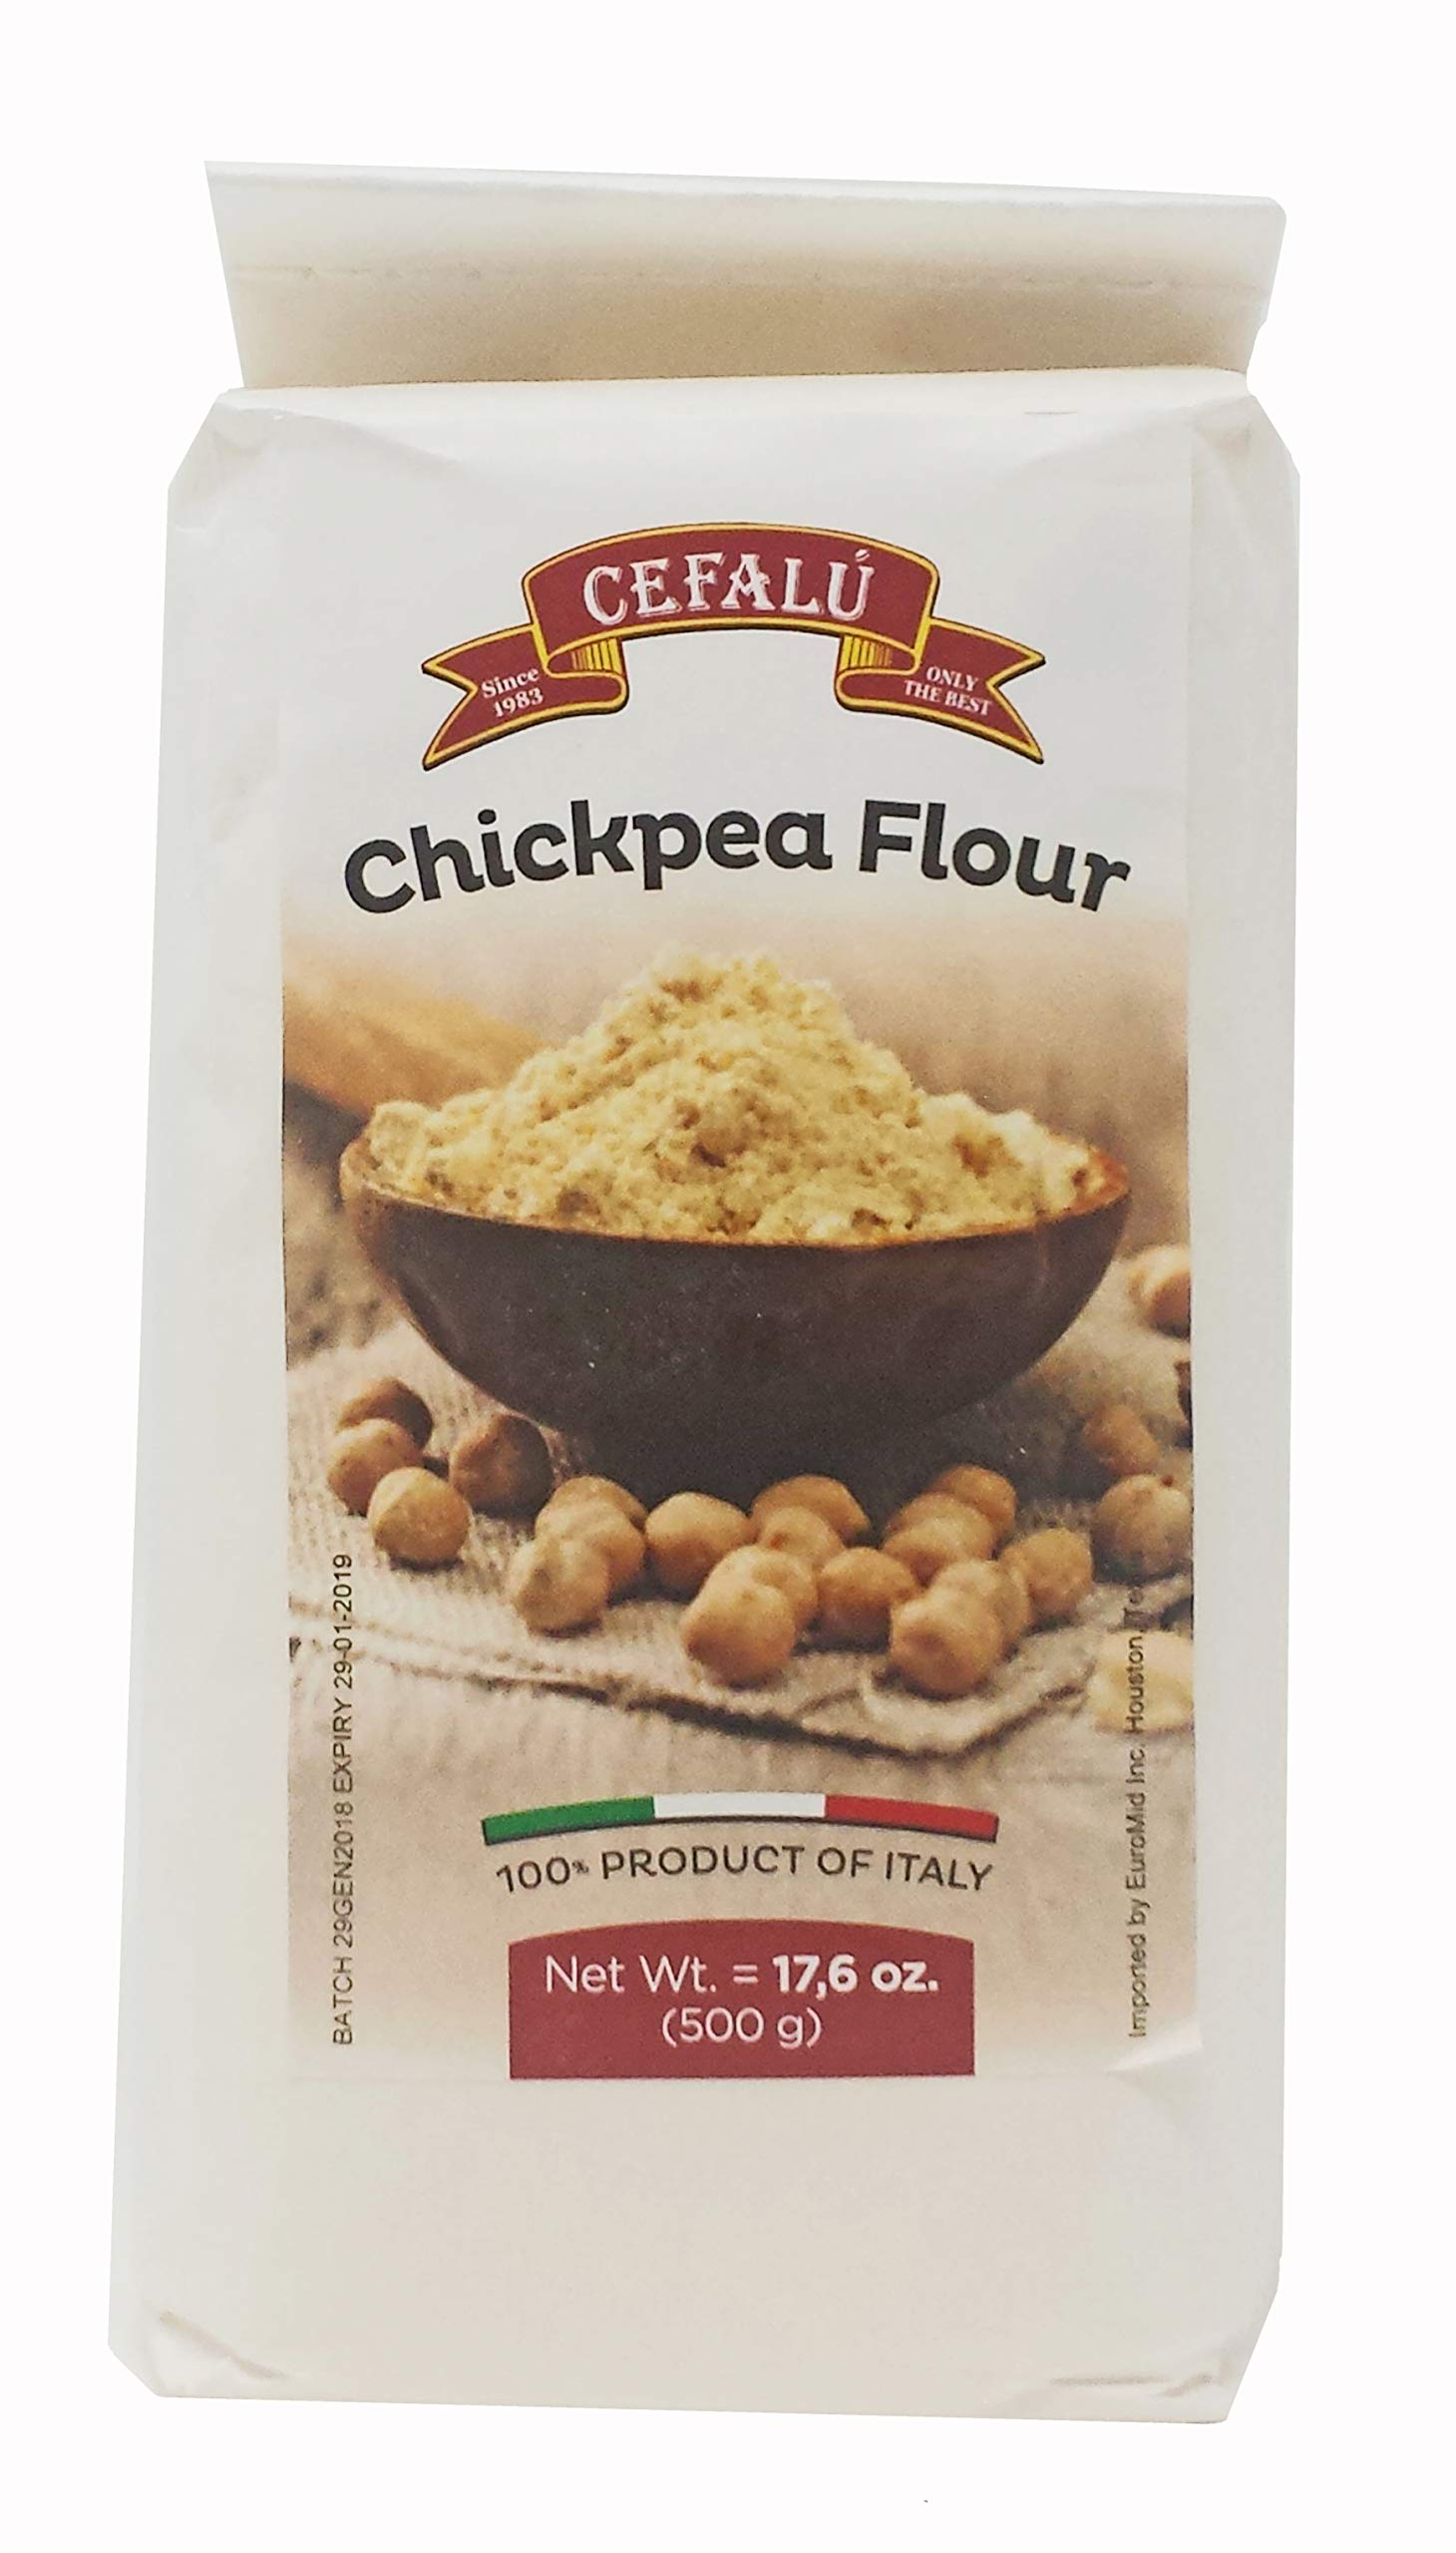 Cefalu Chickpea Garbanzo Bean Flour Pack of 3 (17.6 Ounces Each Bag) Product of Italy, Gluten Free